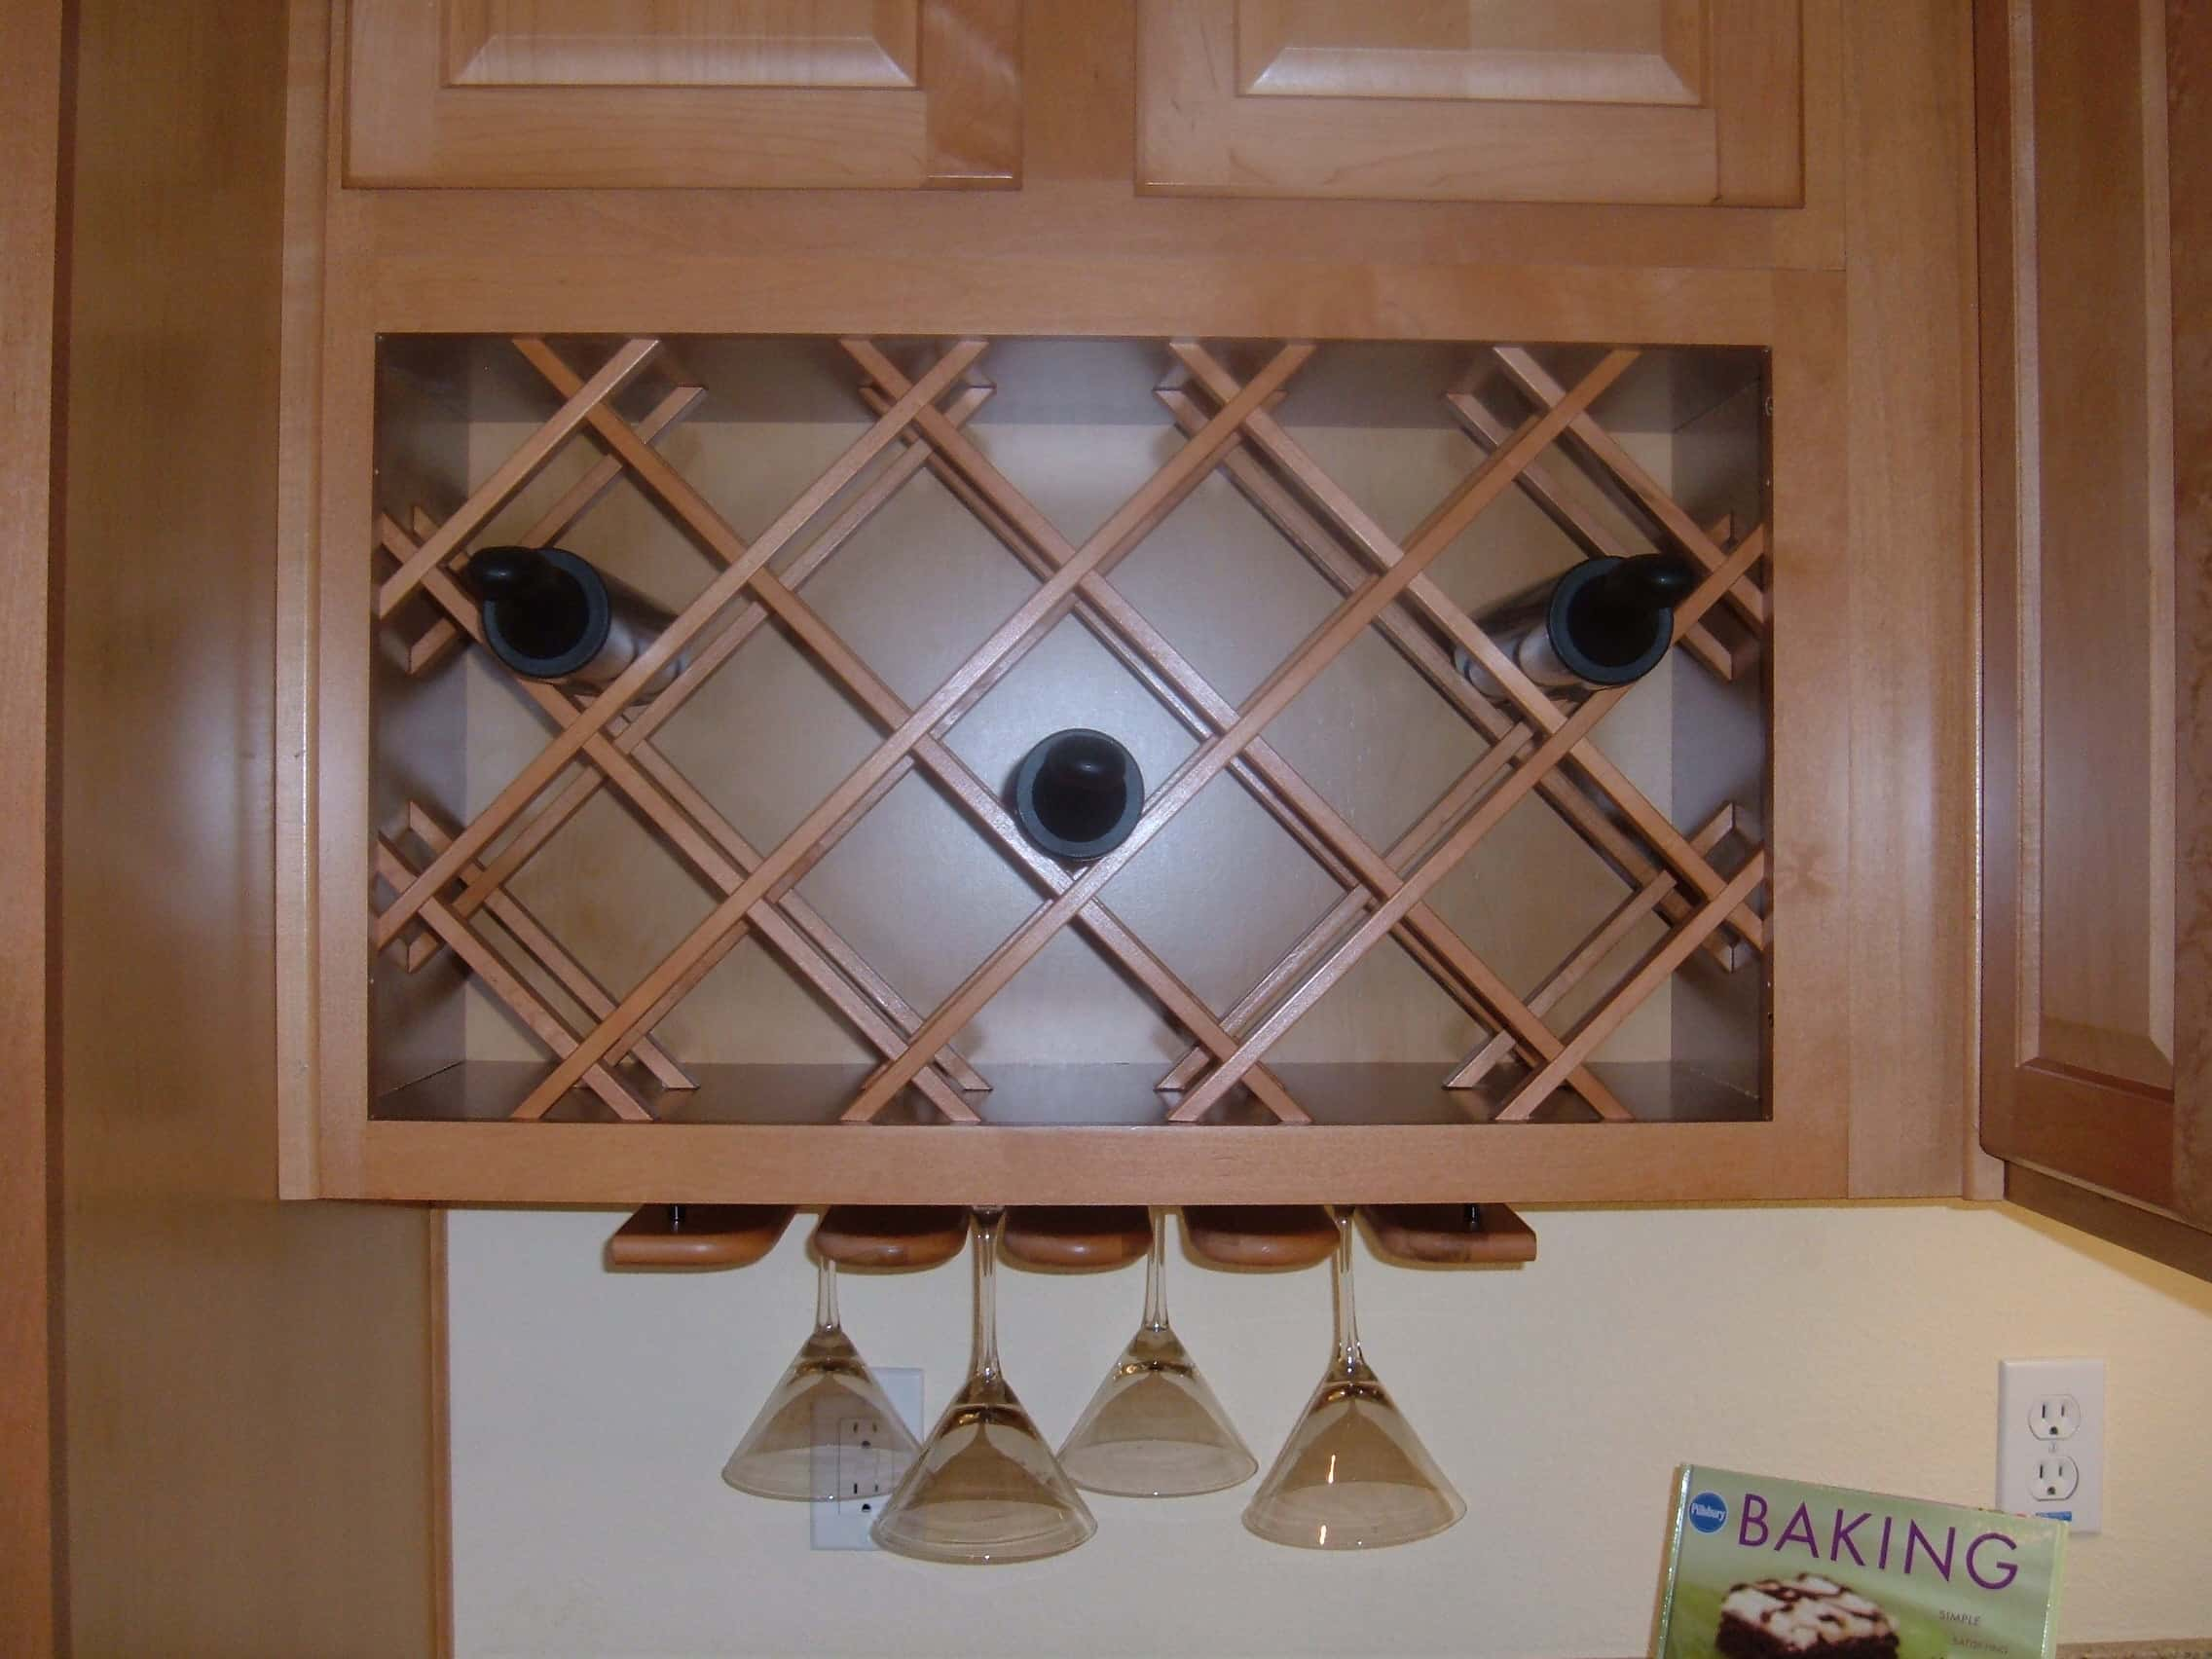 Wine storage area with cross angled shelves to lay down wine bottles along with lower hanging area for wine glass.